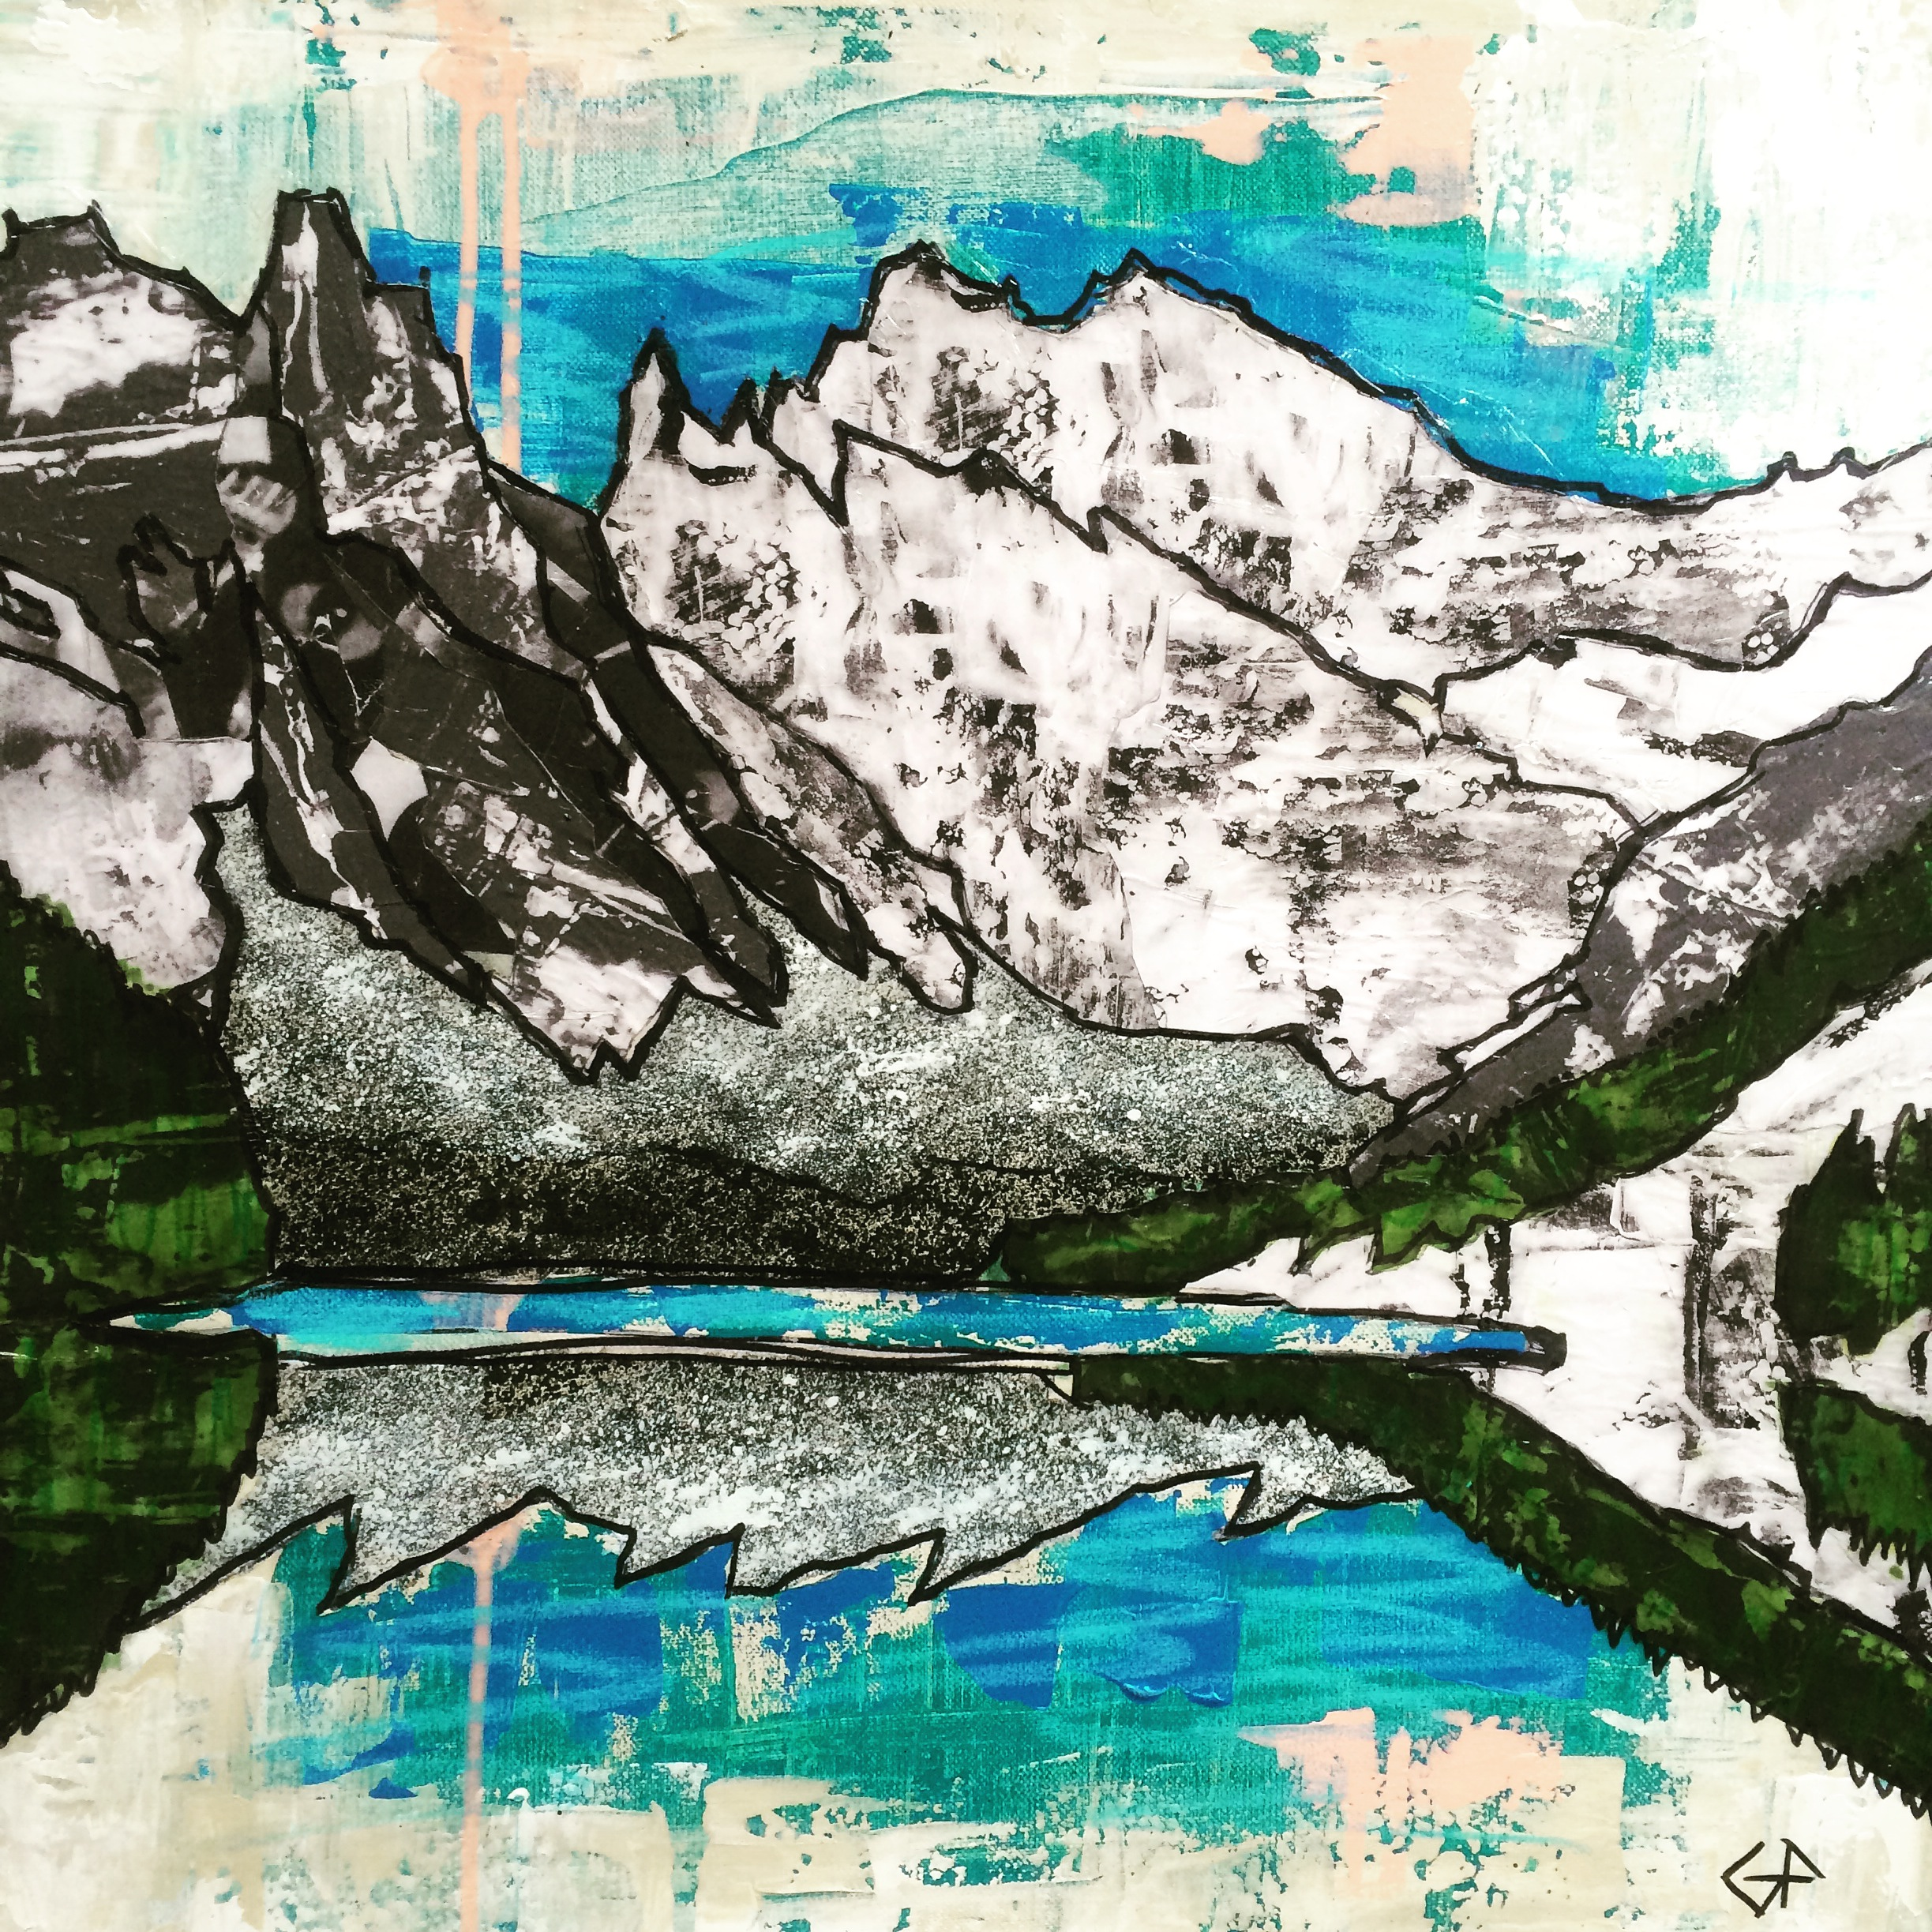 lake-agnes-alberta-mixed-media-on-canvas-50cmx50cm